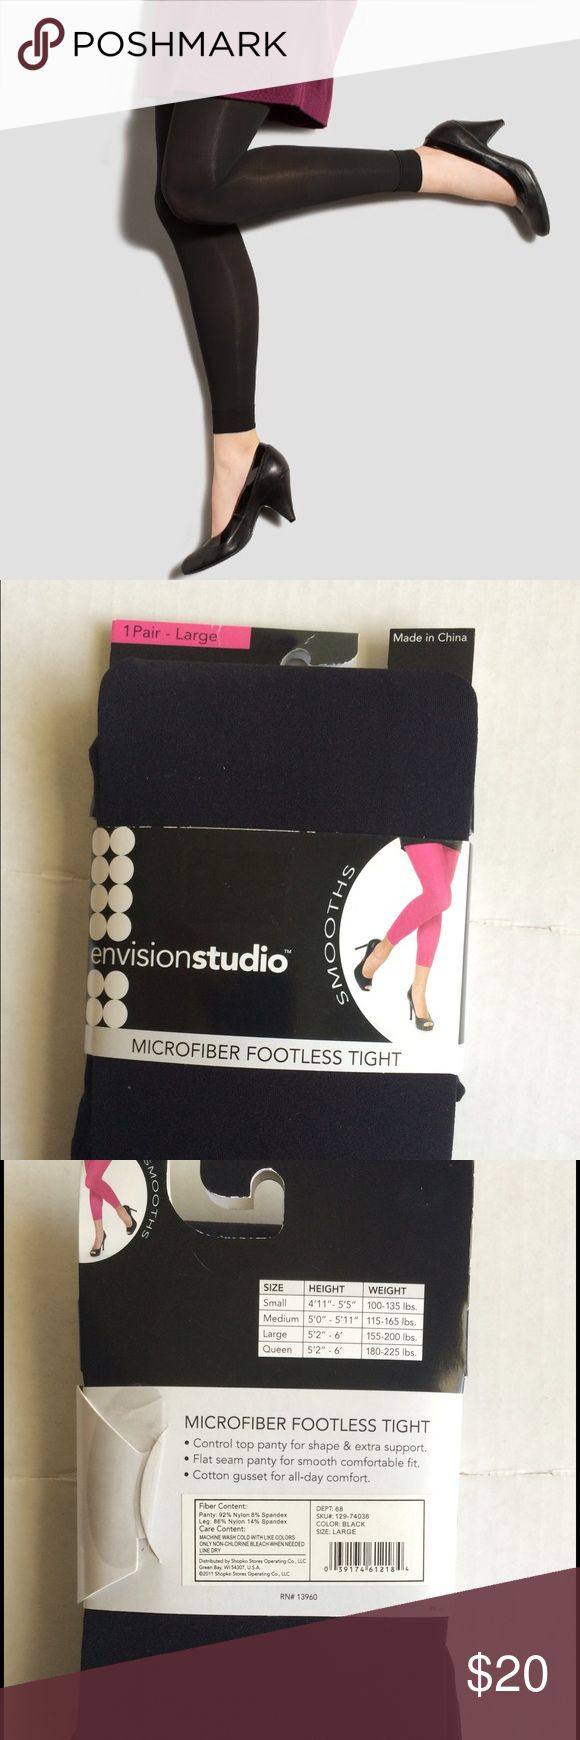 Black Microfiber Footless Tights Large New in package. See photo for sizing Envision Studio Accessories Hosiery & Socks